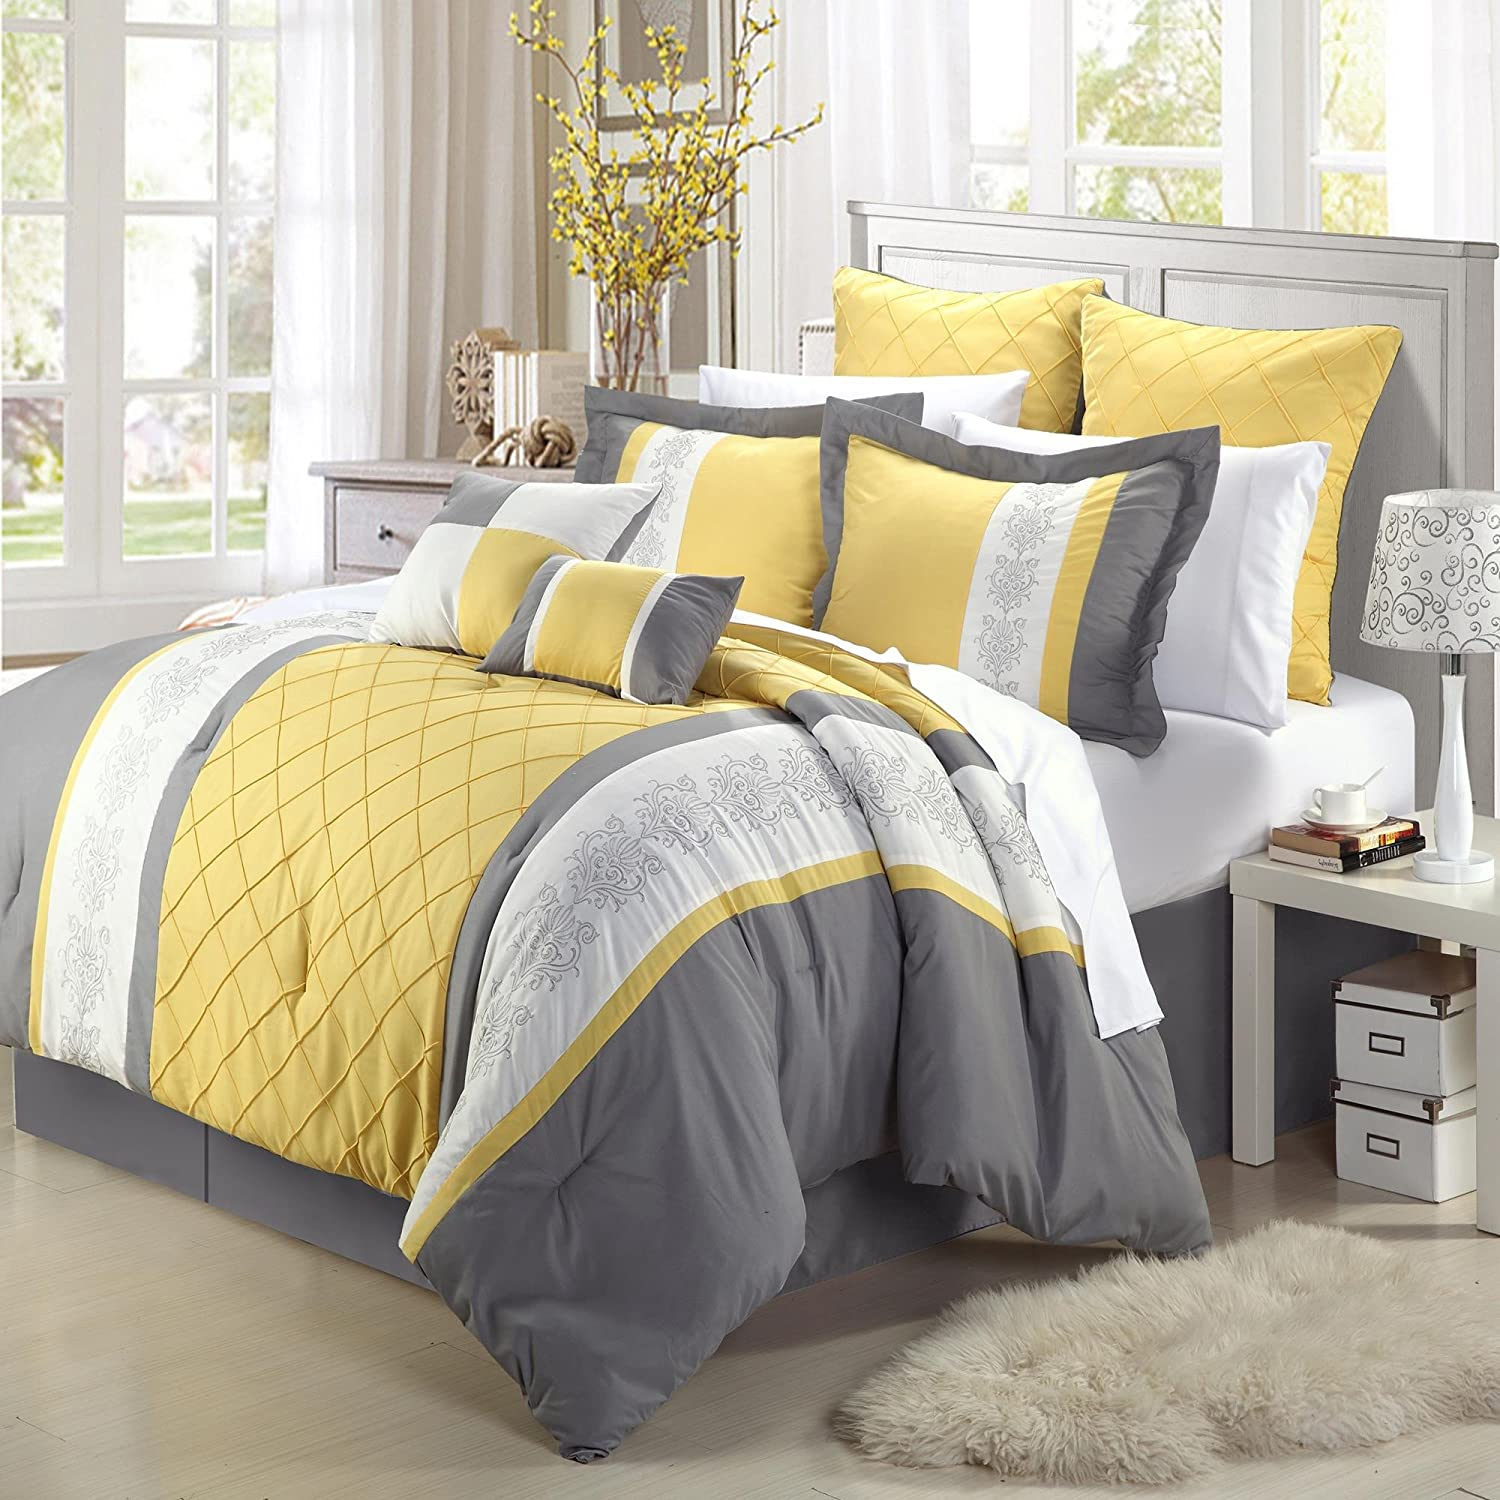 shop echo comforter twin product bed image aqua cyprus z coral design bedding yellow set